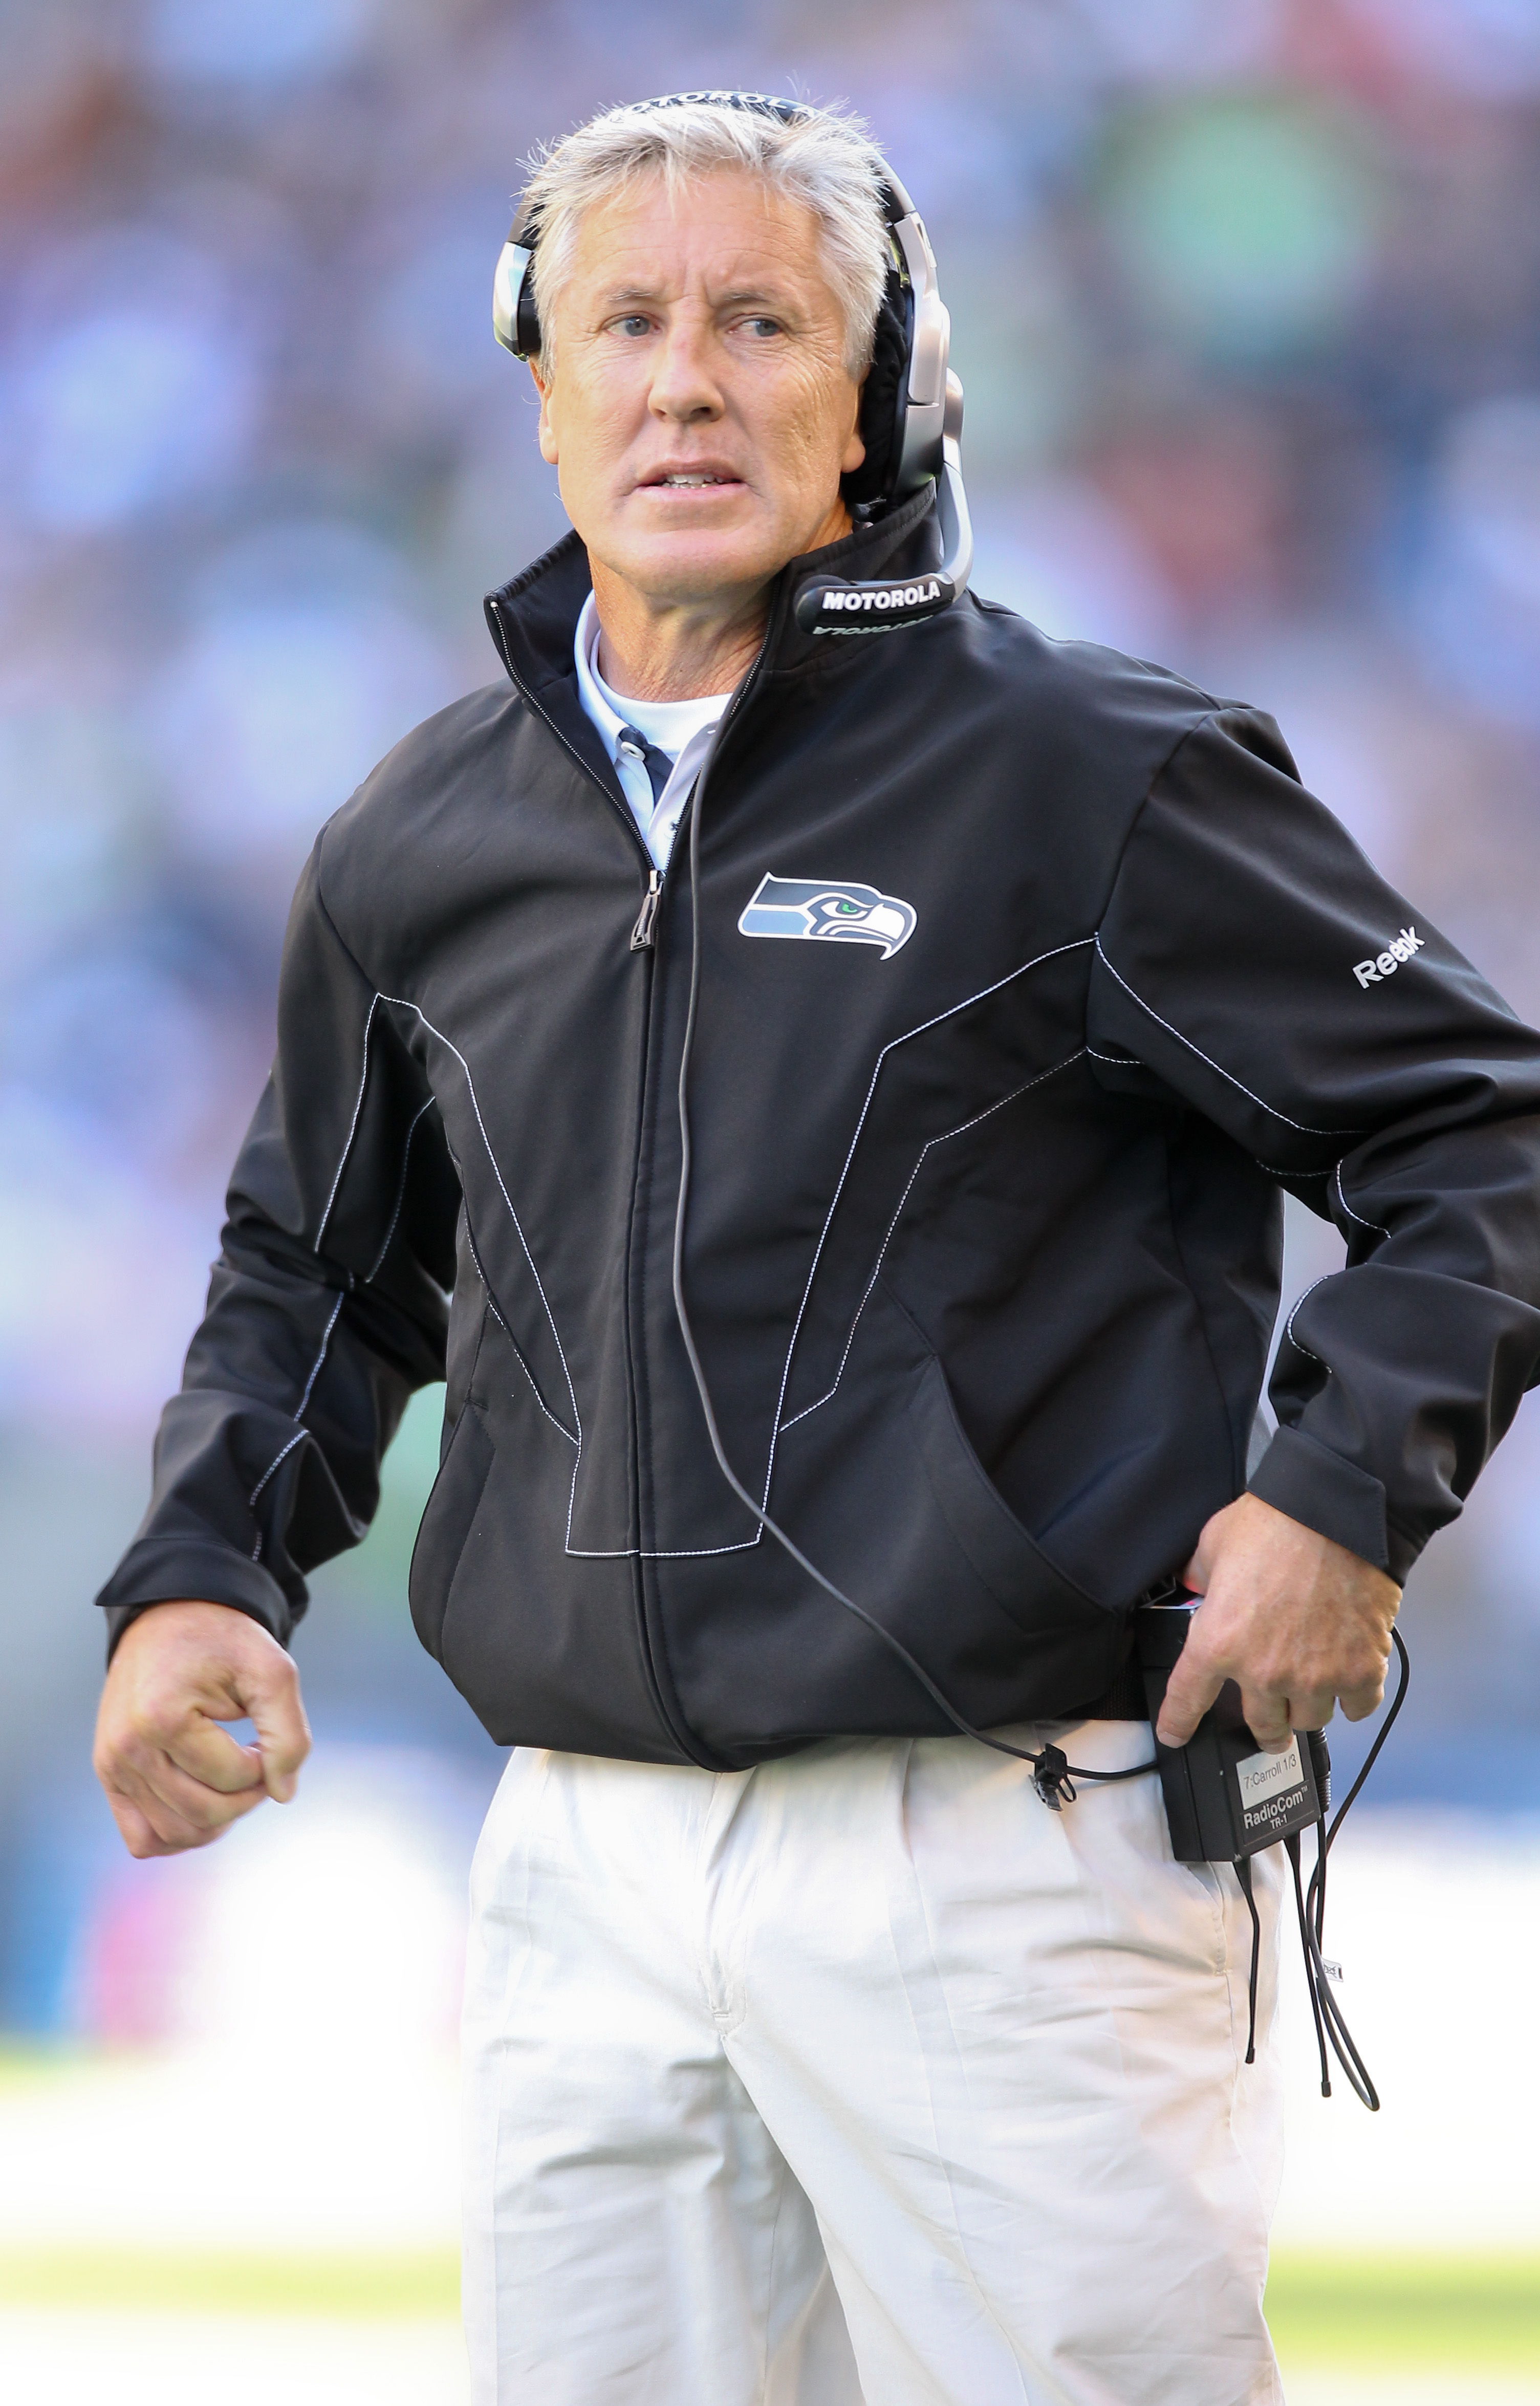 Prepared for a more consistent 2011 in his second season as Seahawks Head Coach.